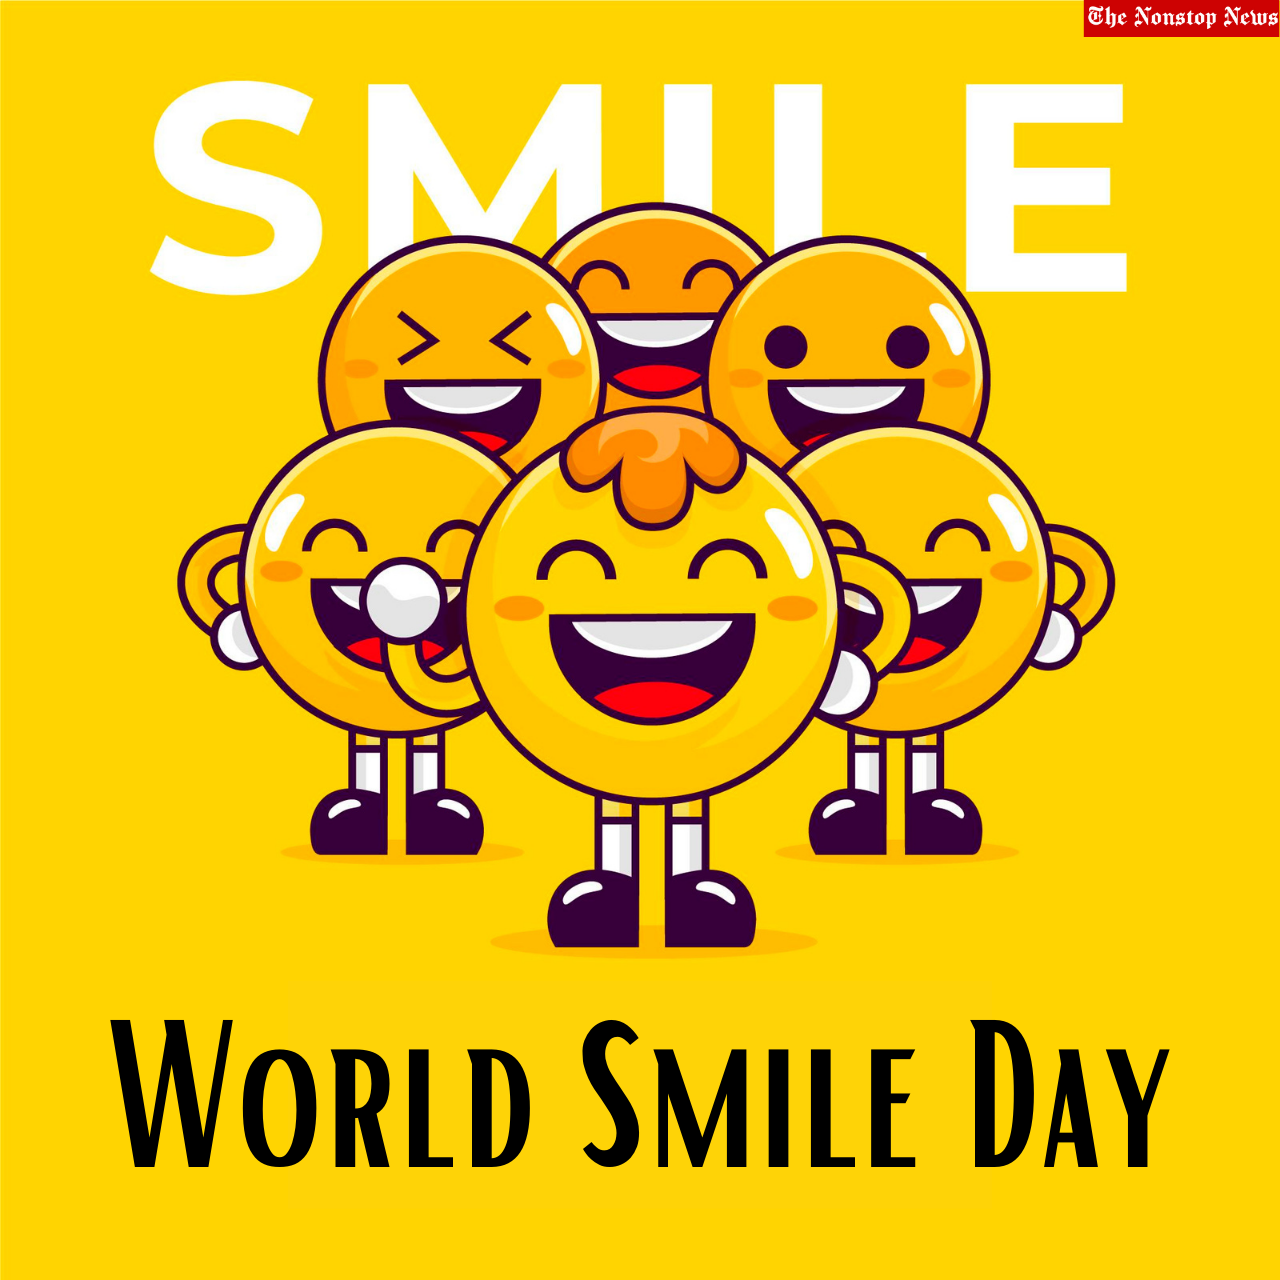 World Smile Day 2021 Quotes, Poster, Wishes, HD Images, Messages, Meme, and Gif to Share